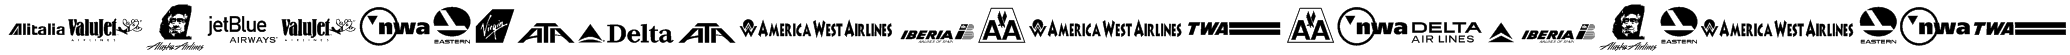 Airline Logos Past and Present Font